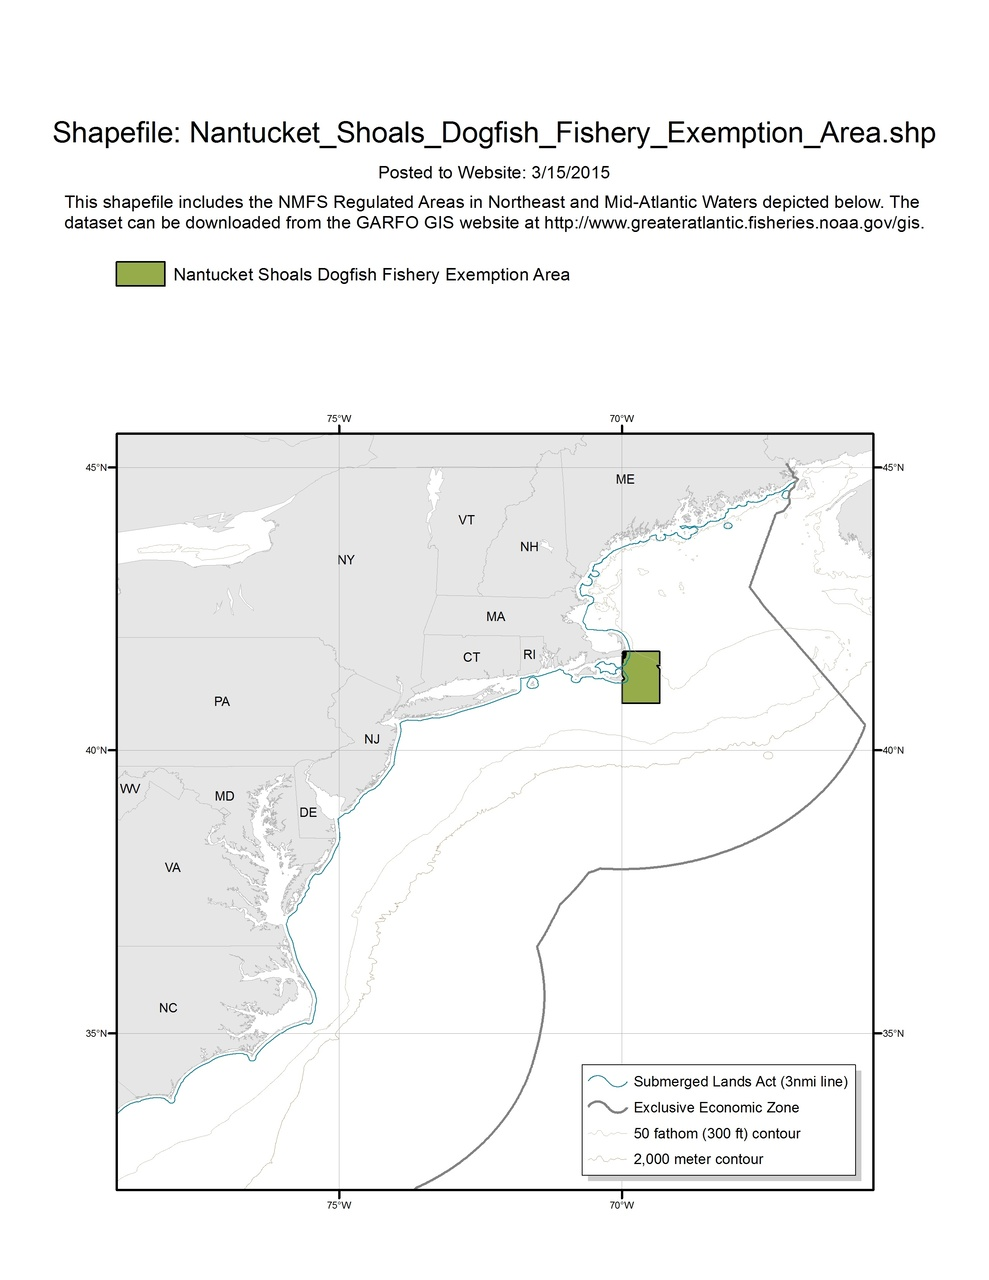 Nantucket_Shoals_Dogfish_Fishery_Exemption_Area_MAP.jpg